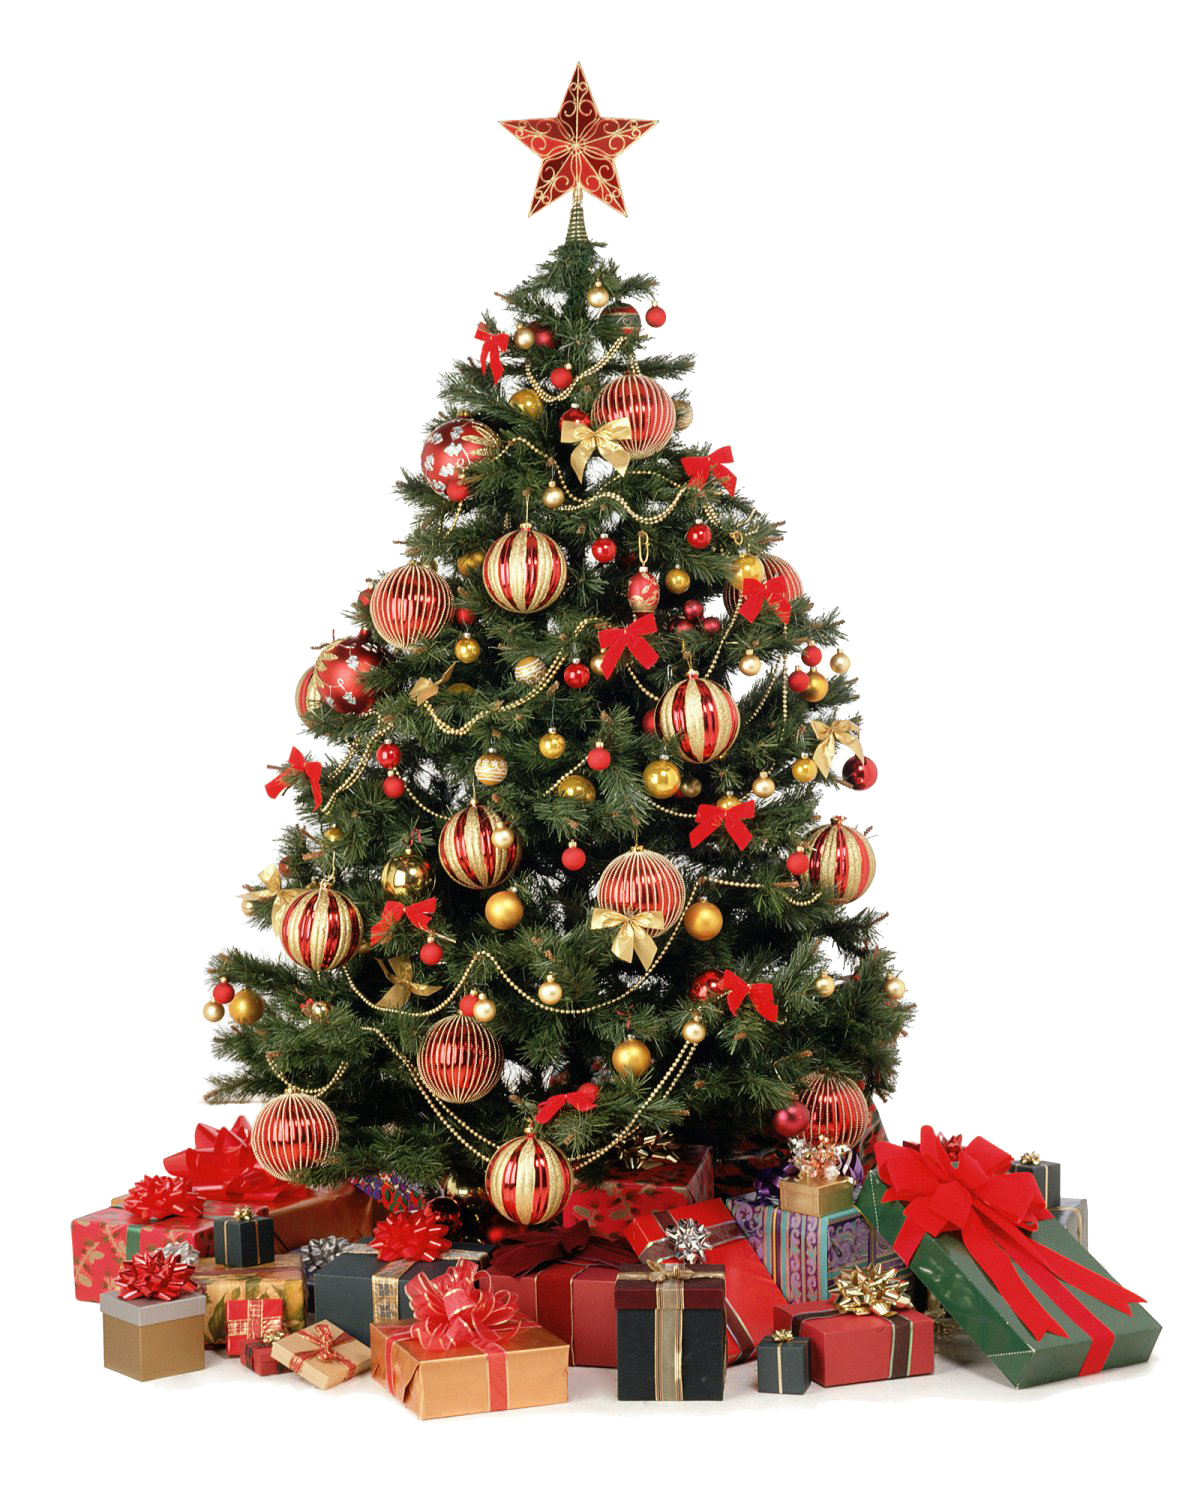 Png mart. Home clipart christmas